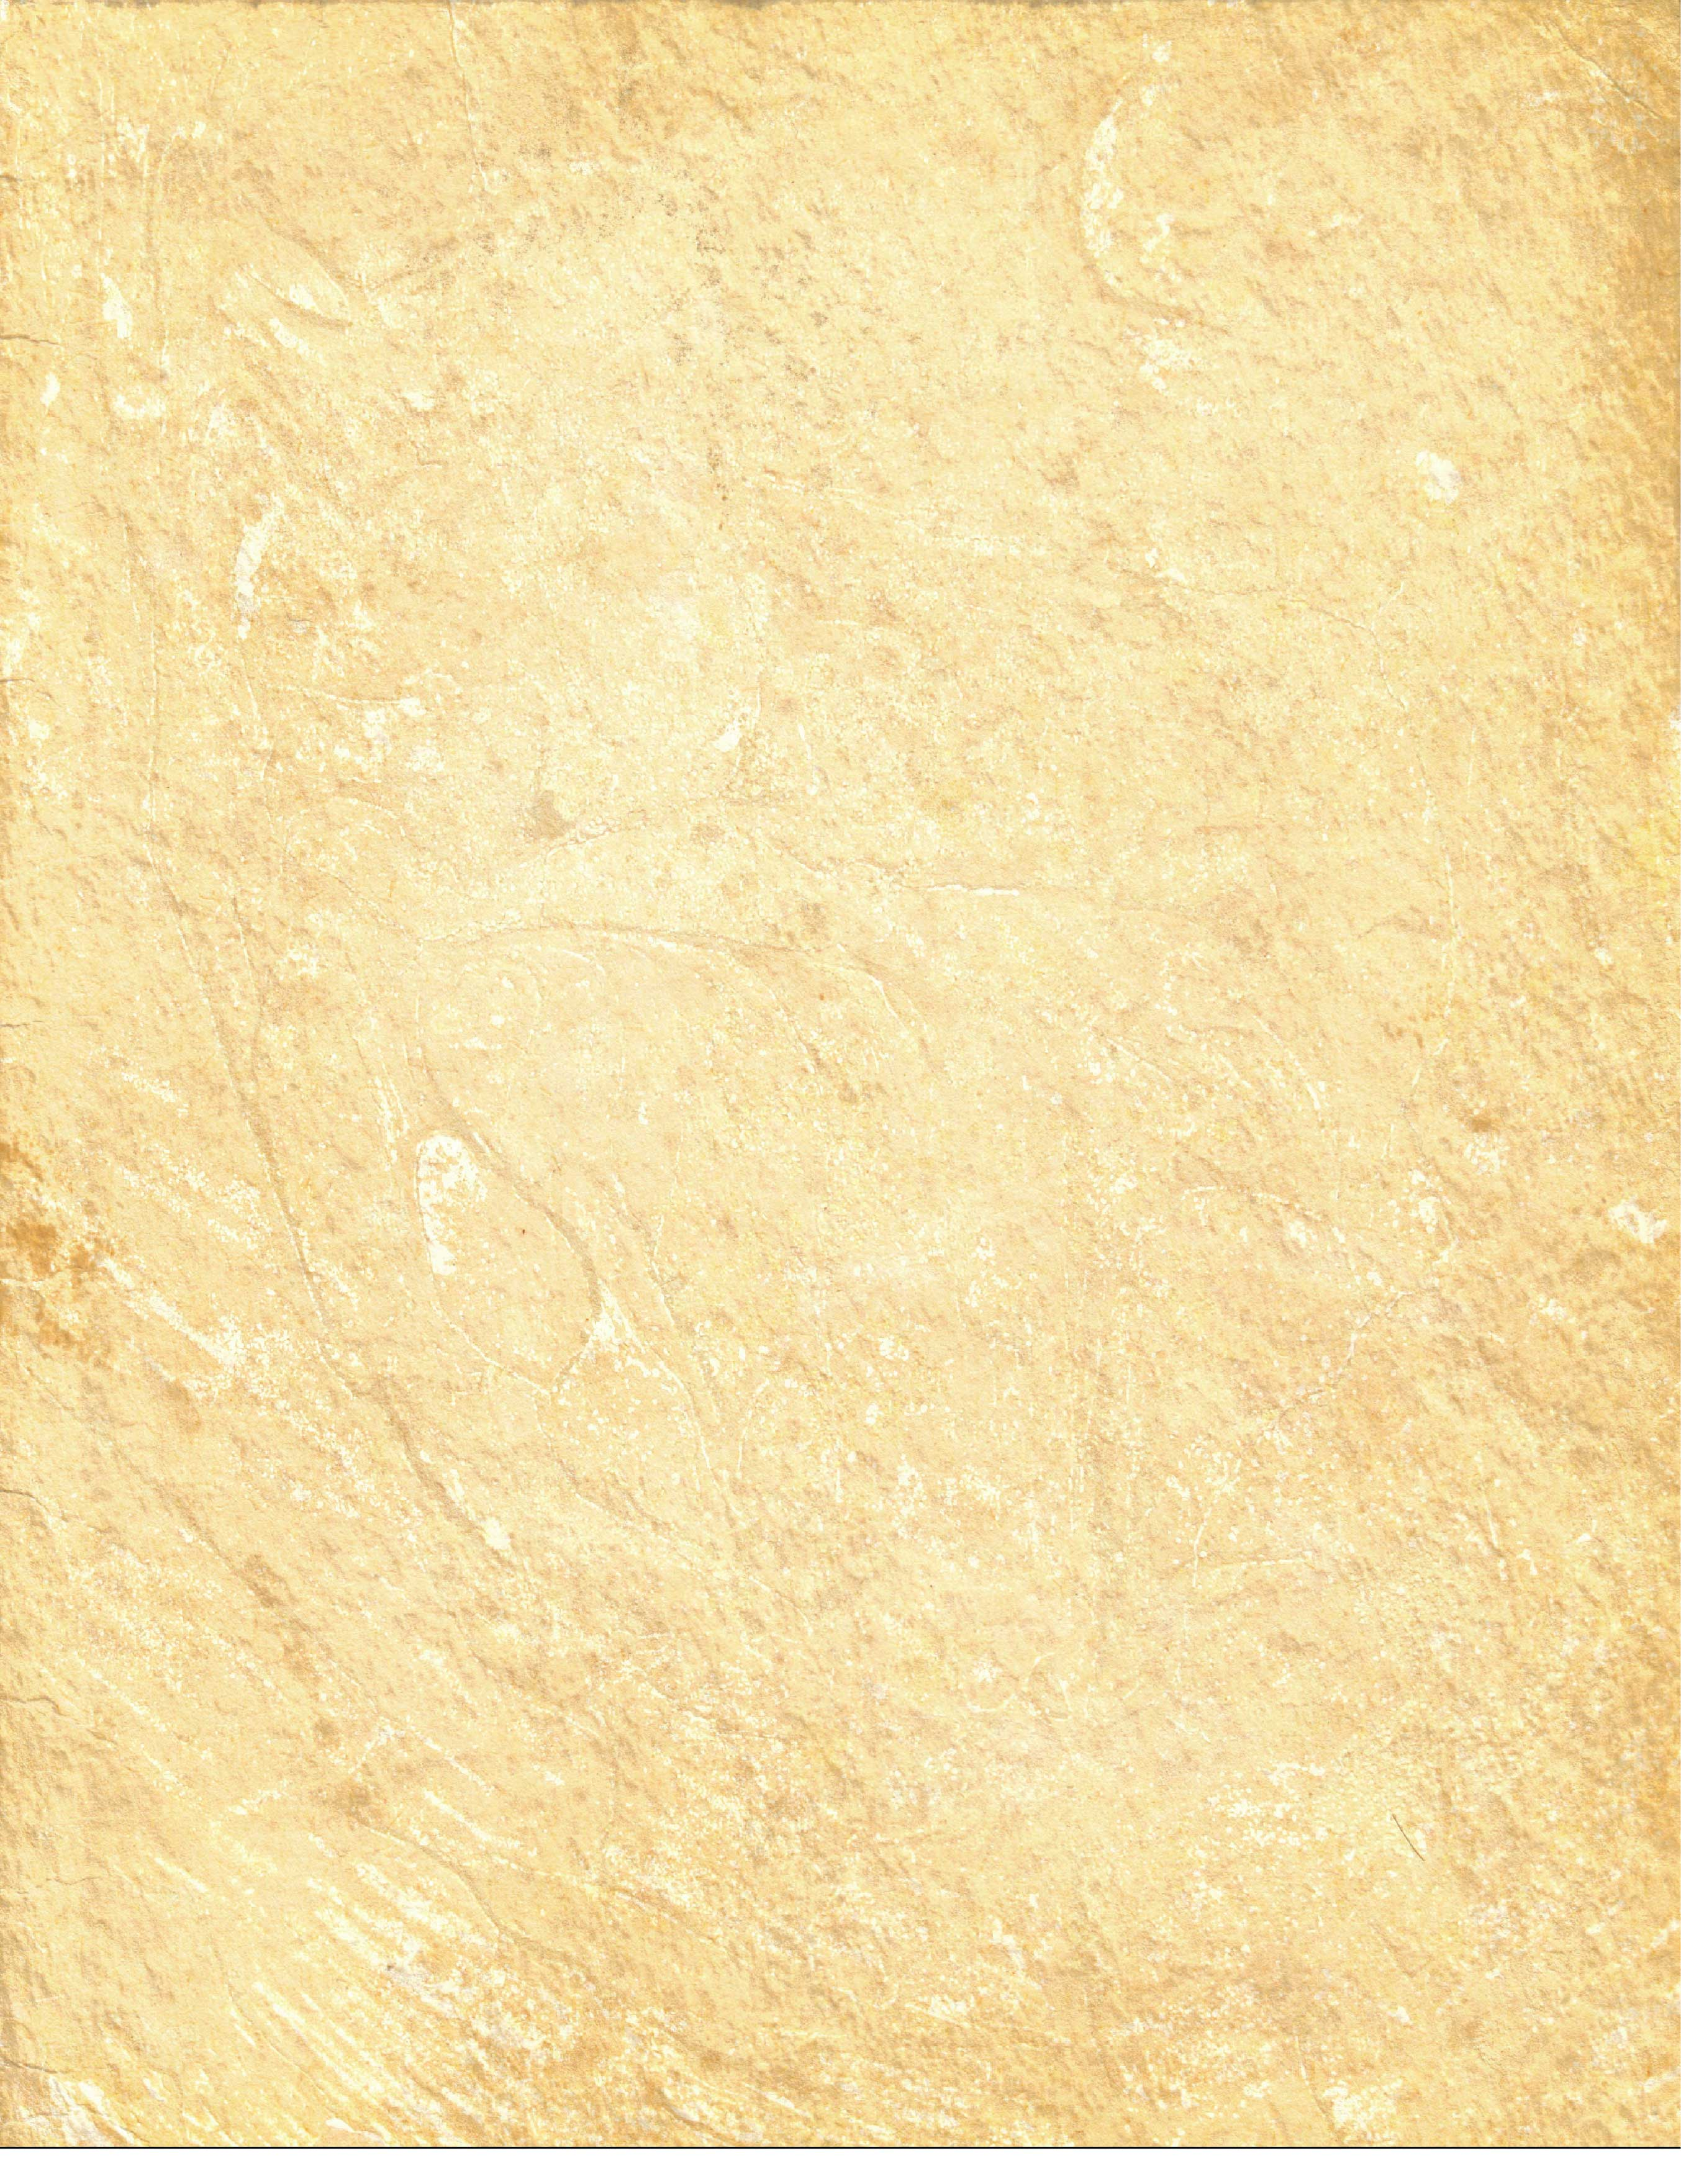 Gold Texture Background Images Crazy Gallery 2707x3518